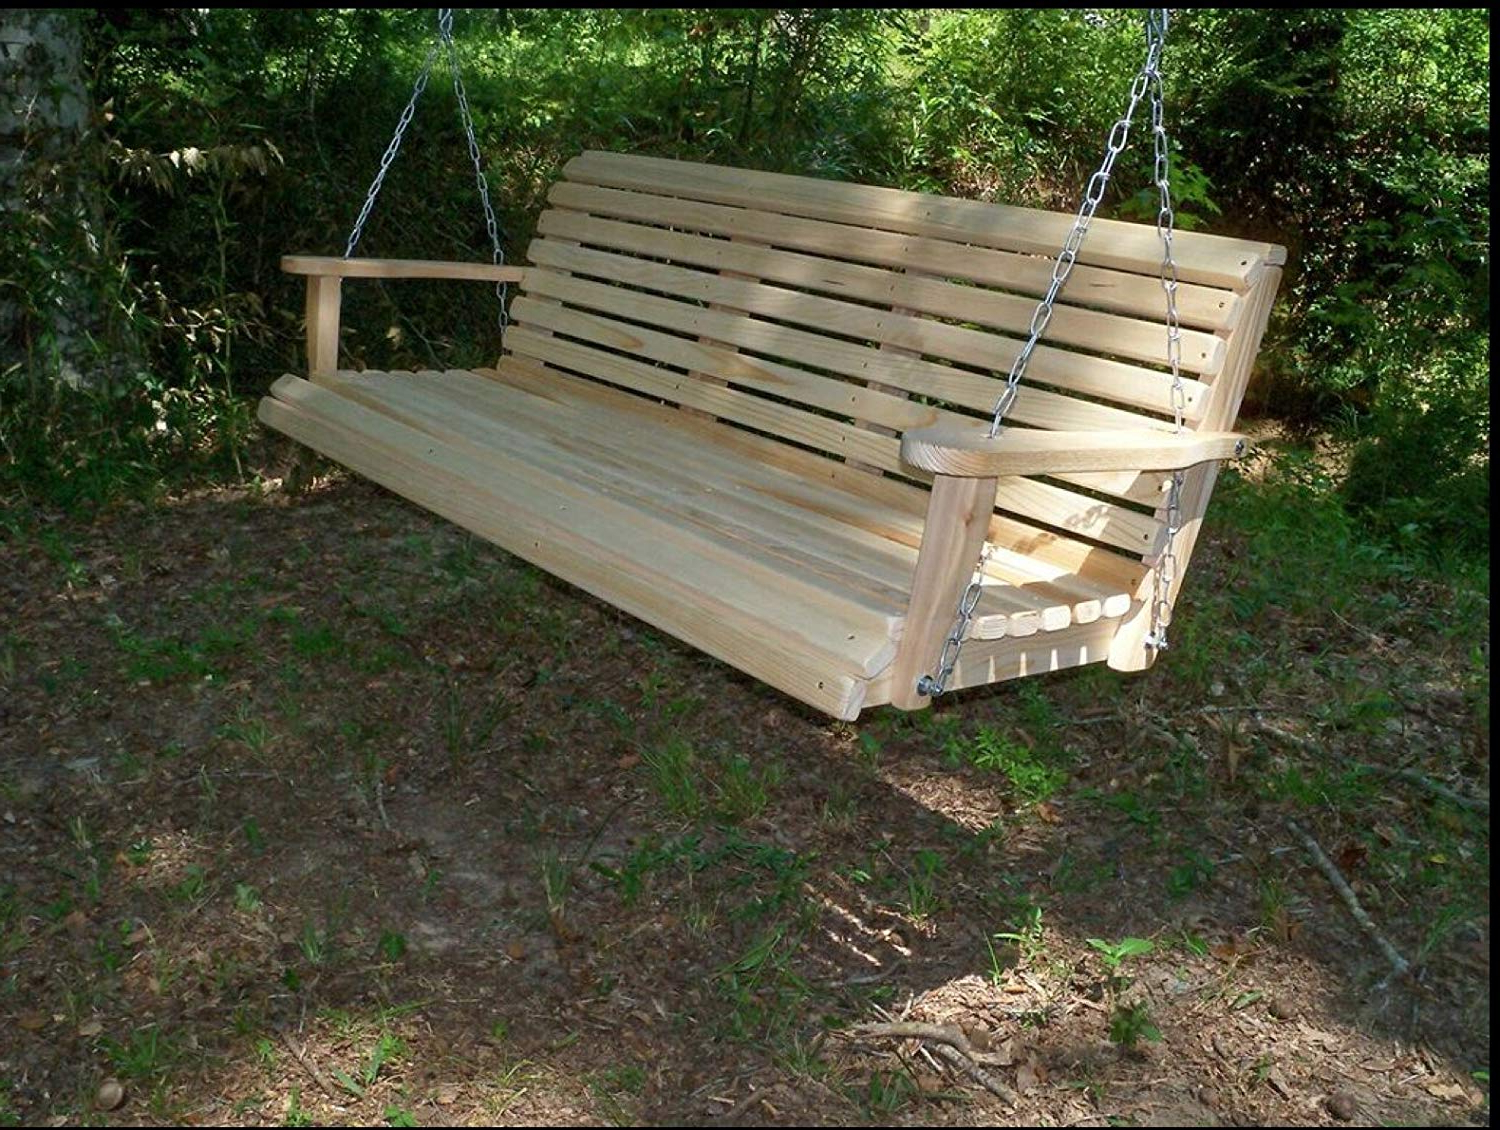 Ecommersify Inc 5 Five Feet Ft Made In The Usa Rot Resistant Cypress Lumber Roll Back Porch Swing With Swing Mate Comfort Springs Throughout Most Current 5 Ft Cedar Swings With Springs (View 8 of 30)